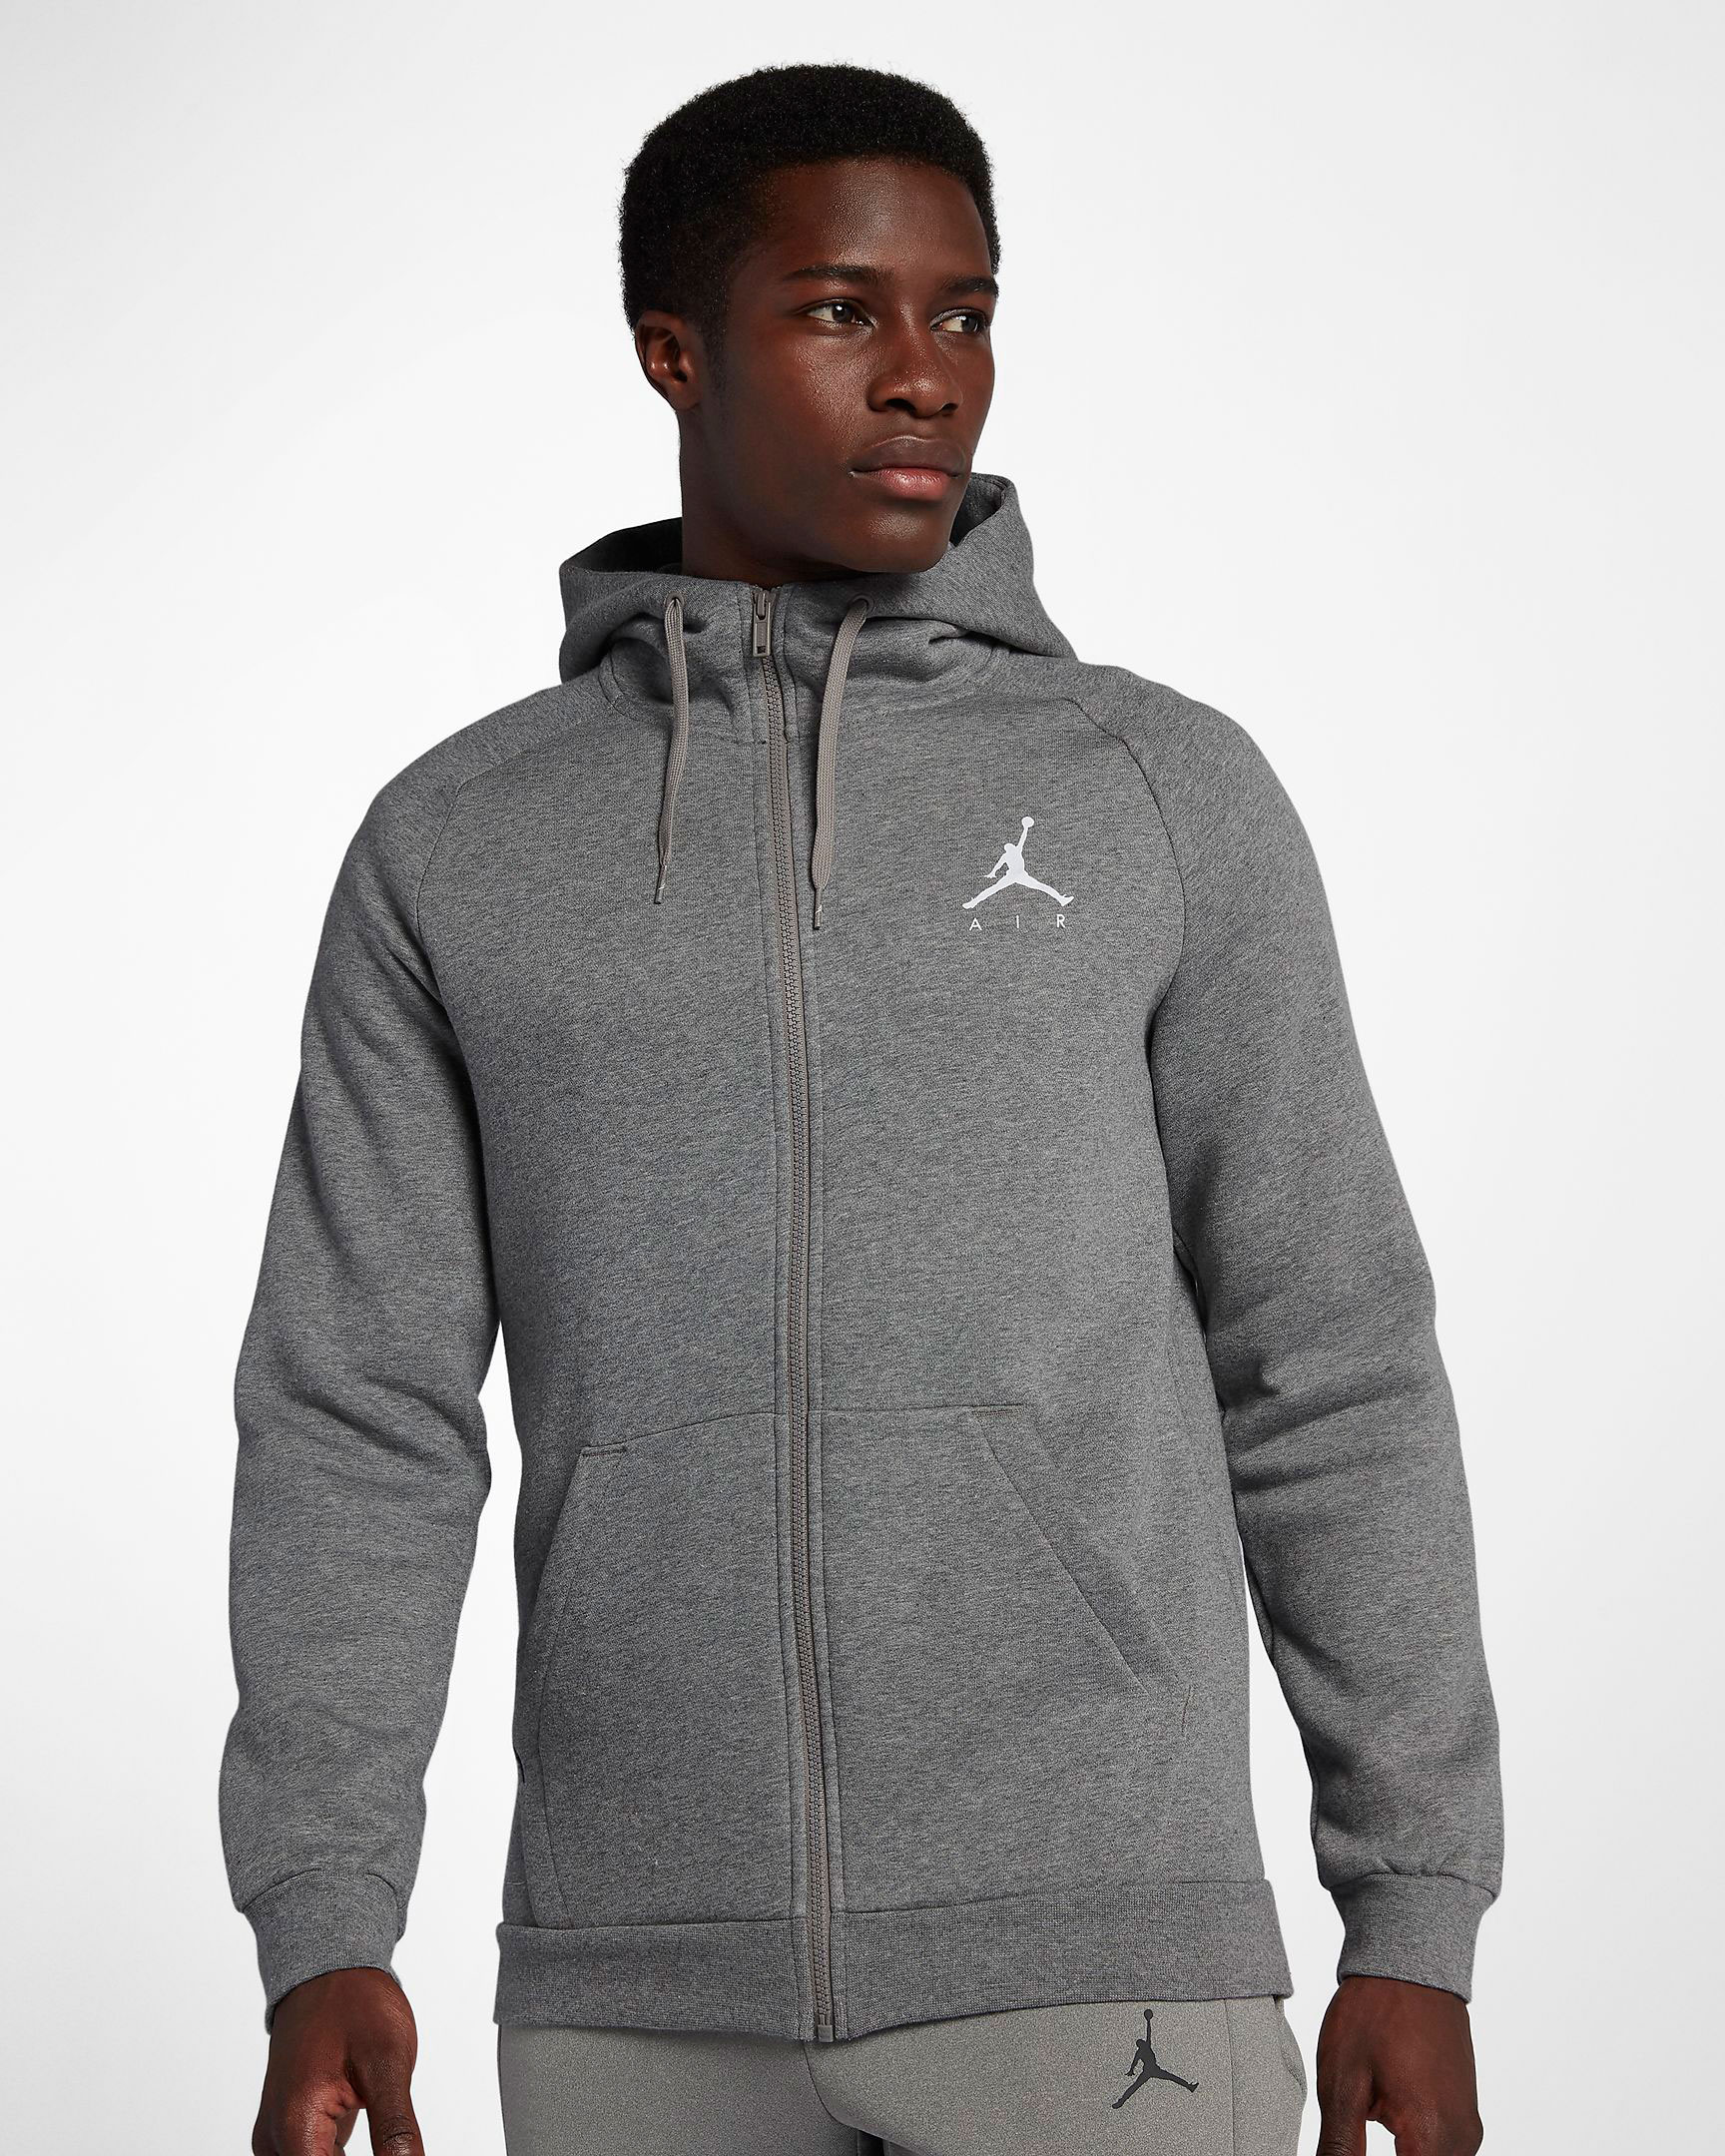 air-jordan-12-dark-grey-white-zip-hoodie-match